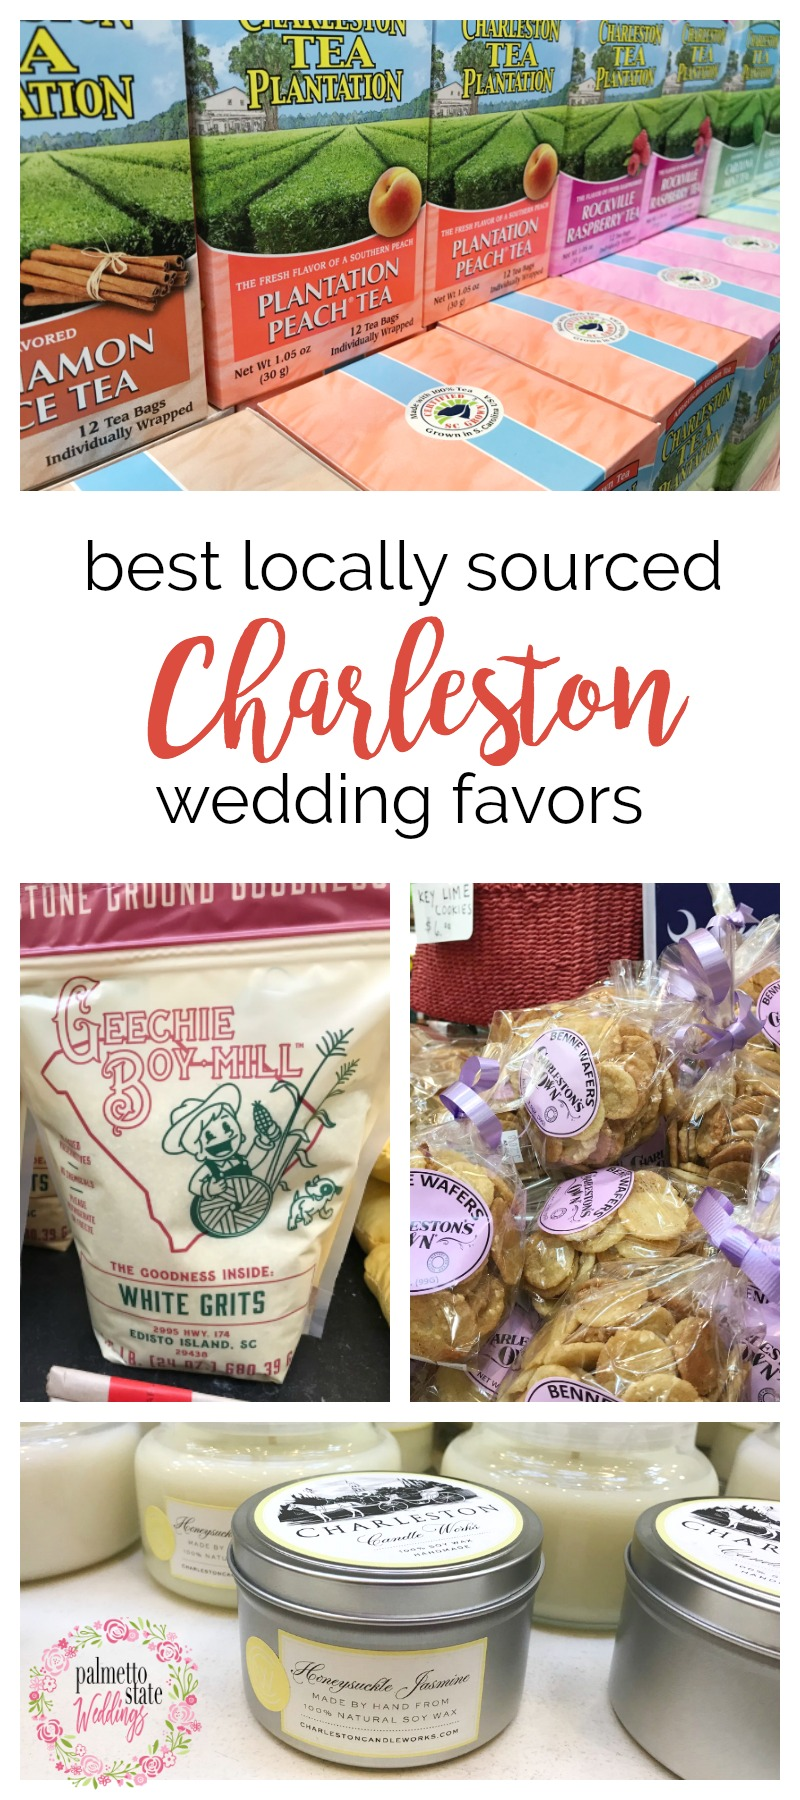 Lowcountry Hospitality: 13 Thoughtful Charleston Wedding Favors | Palmetto State Weddings